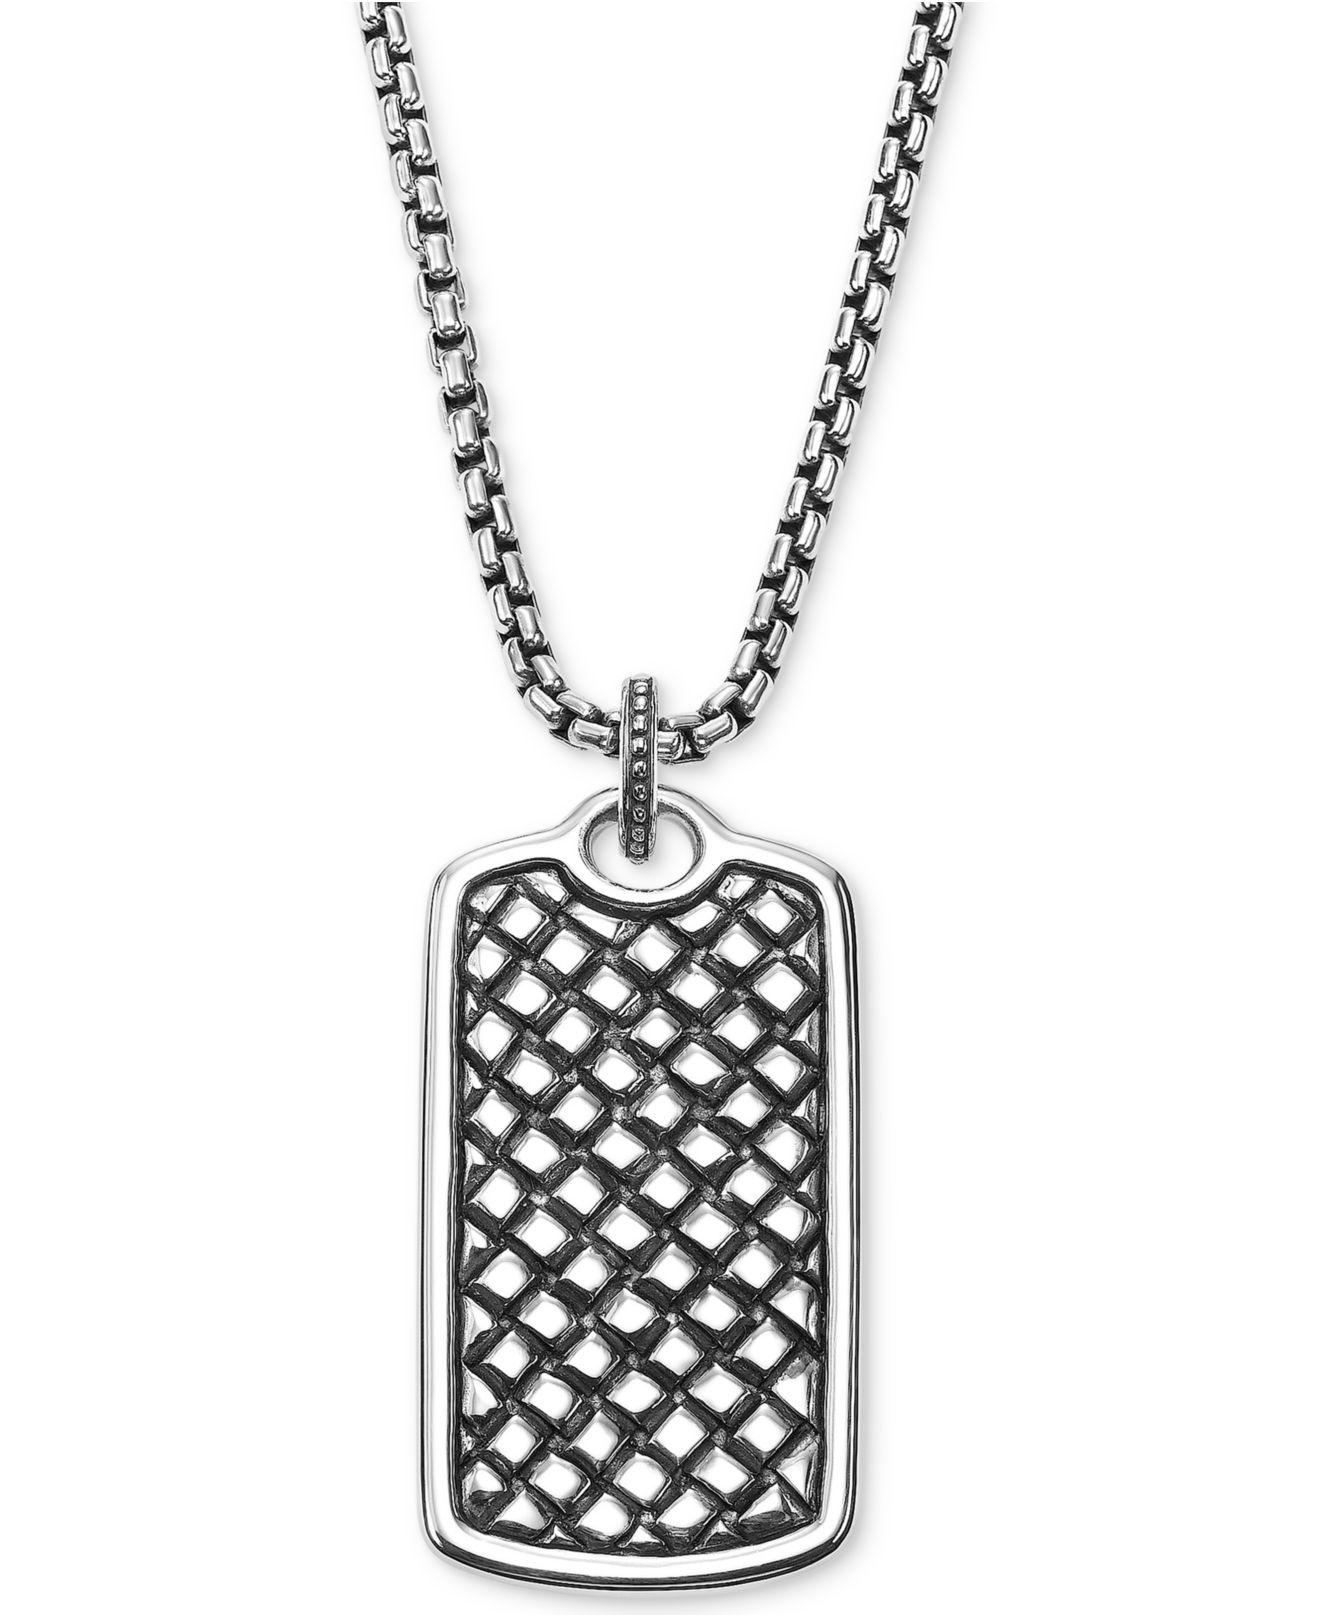 889ba6f8776103 Scott Kay - Metallic Men's Textured Dog Tag Pendant Necklace In Sterling  Silver for Men -. View fullscreen